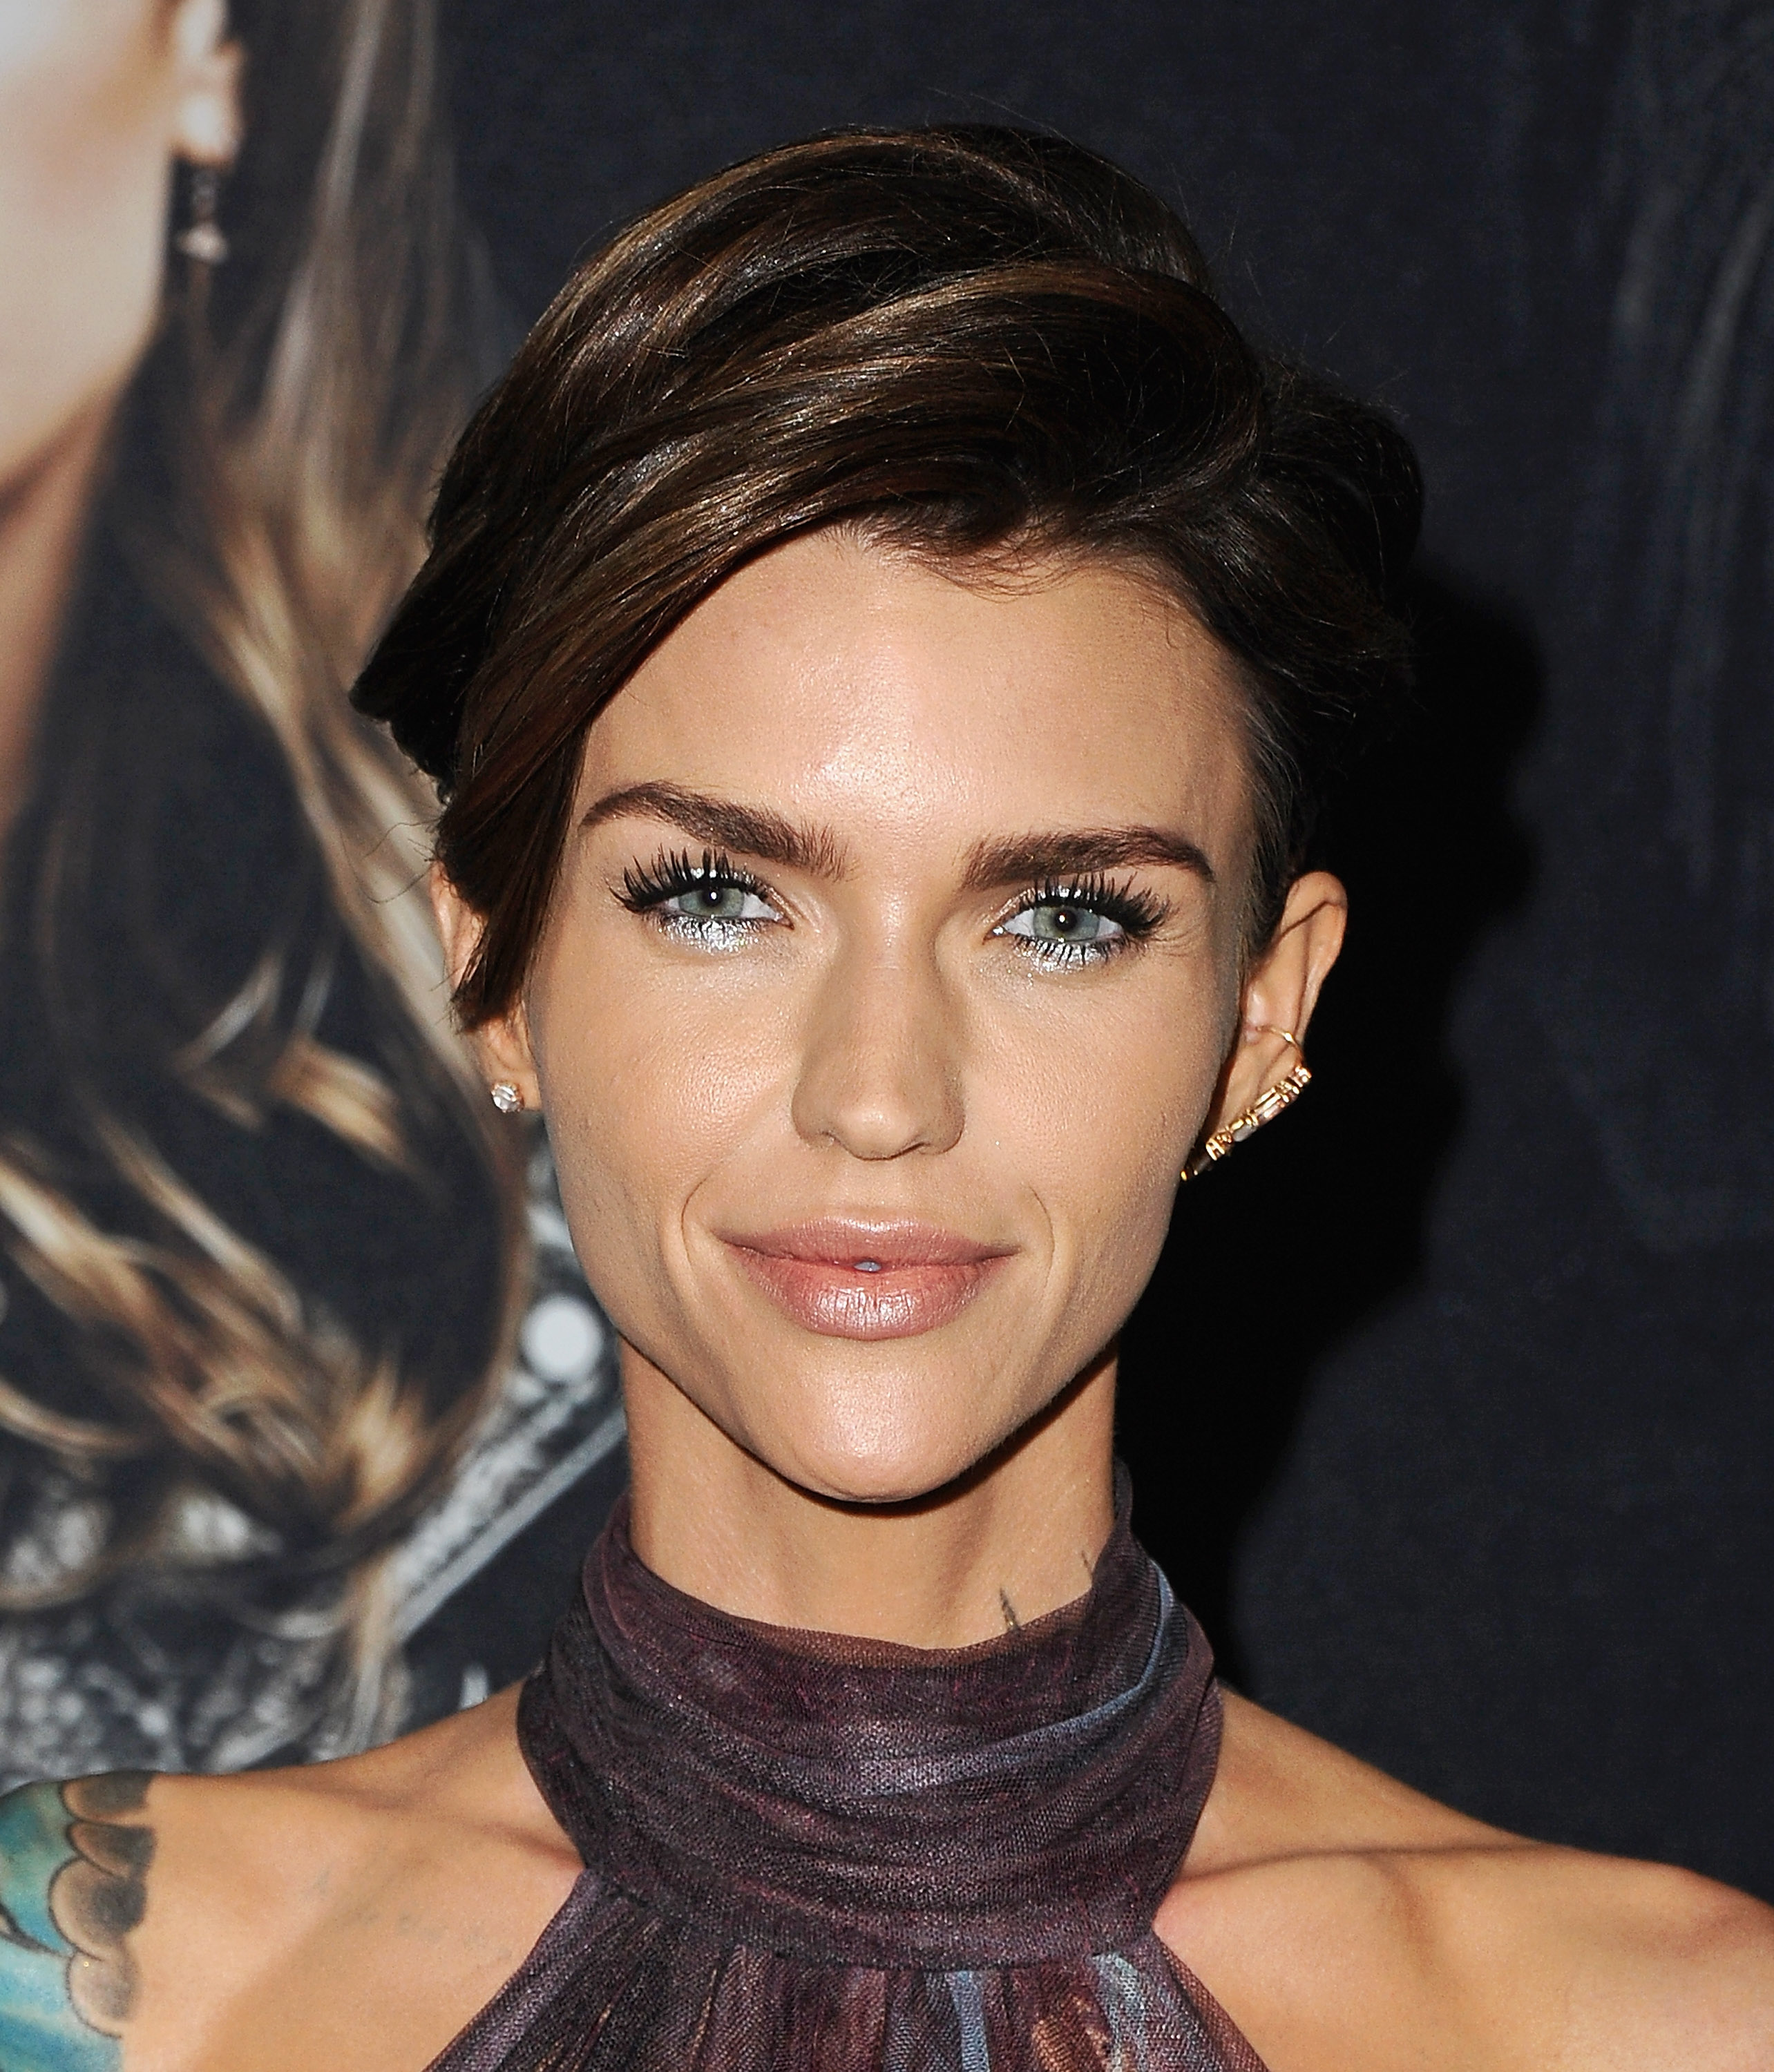 "Leave it to <a href=""https://style.nine.com.au/ruby-rose"" target=""_blank"">Ruby Rose</a> to change up the beauty rules when it comes to festive holiday looks.<br /> <br /> Proving that you don't need a red lip and smokey eye to make a splash, the Australian model played it cool on the red carpet at the Hollywood premiere of <em>Pitch Perfect 3 </em>with a metallic, silver frosted eye. <br /> <br /> The look showed us just how to indulge in the seasonal makeup festivities.<br /> <br /> <a href=""https://www.instagram.com/missjobaker/?hl=en"" target=""_blank"">Celebrity makeup artist Jo Baker</a> was behind the look and pulled an eyeliner and mascara from Urban Decay from her beauty bag to create Rose's frosty aesthetic. <br /> <br /> ""A frosty bright metallic silver splash on her centre lid and the same sparkly silver right below the lash line smudged in for a seasonal nod,"" Baker explained to <em><a href=""http://www.instyle.com/beauty/makeup/ruby-rose-silver-eye-makeup"" target=""_blank"">US Instyle.</a></em><br /> <br /> ""Lashes were sootied up and brows perfected with a buff nude lip."" <br /> <br /> Christmas is almost upon us, which means one thing: party season. Love, it or loathe it, it's inescapable. And you'll need a go-to beauty look that will stand out.<br /> <br /> Take a leaf out of Ruby's beauty book with our pick of ten chic silver eye-shadows."